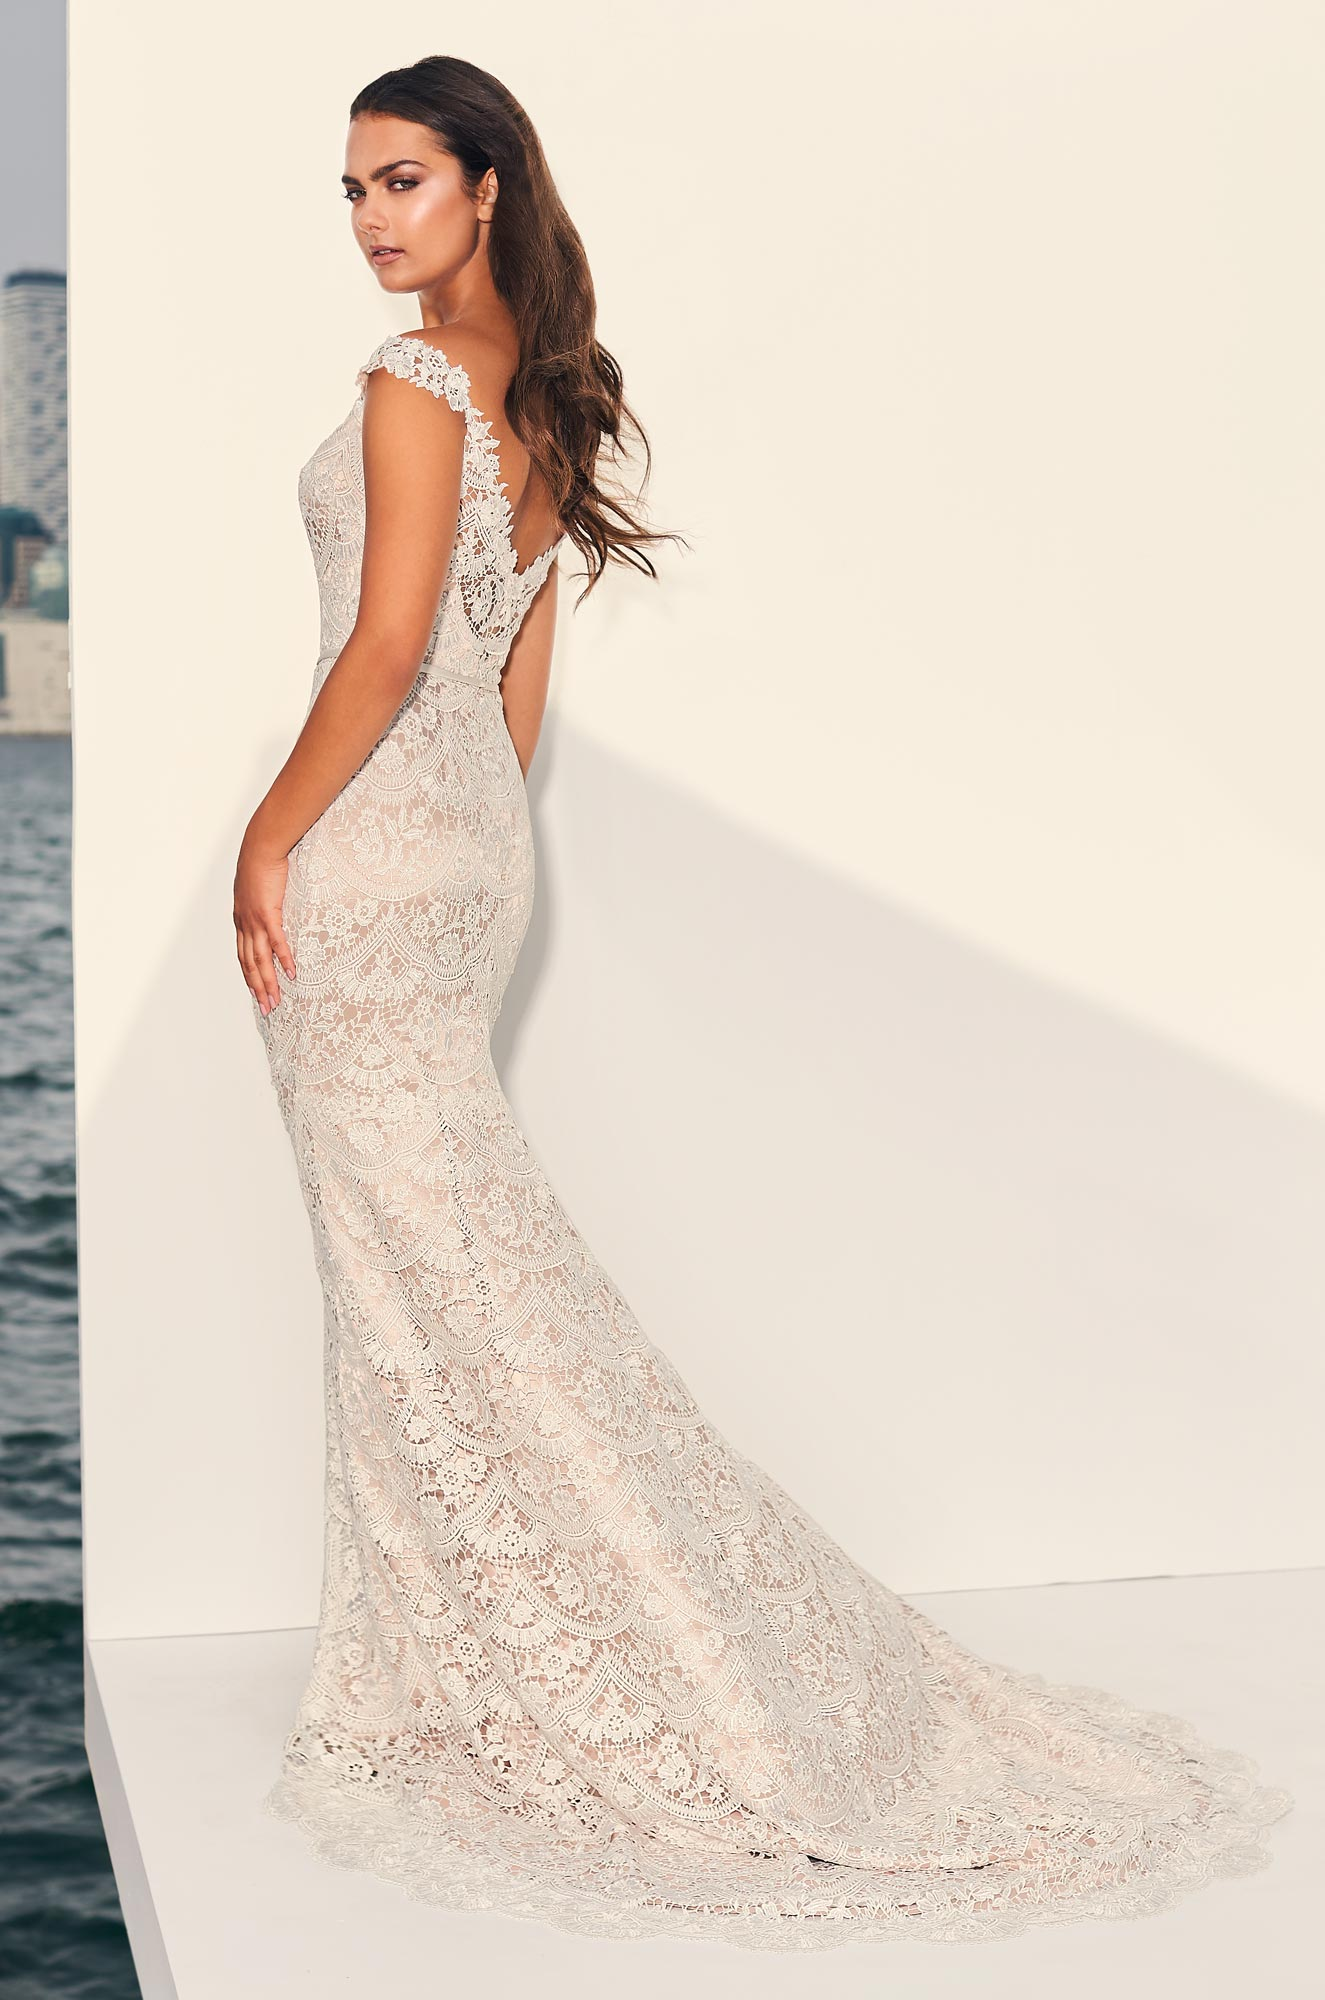 Lavish Guipure Lace Wedding Dress - Style #4840 | Paloma Blanca